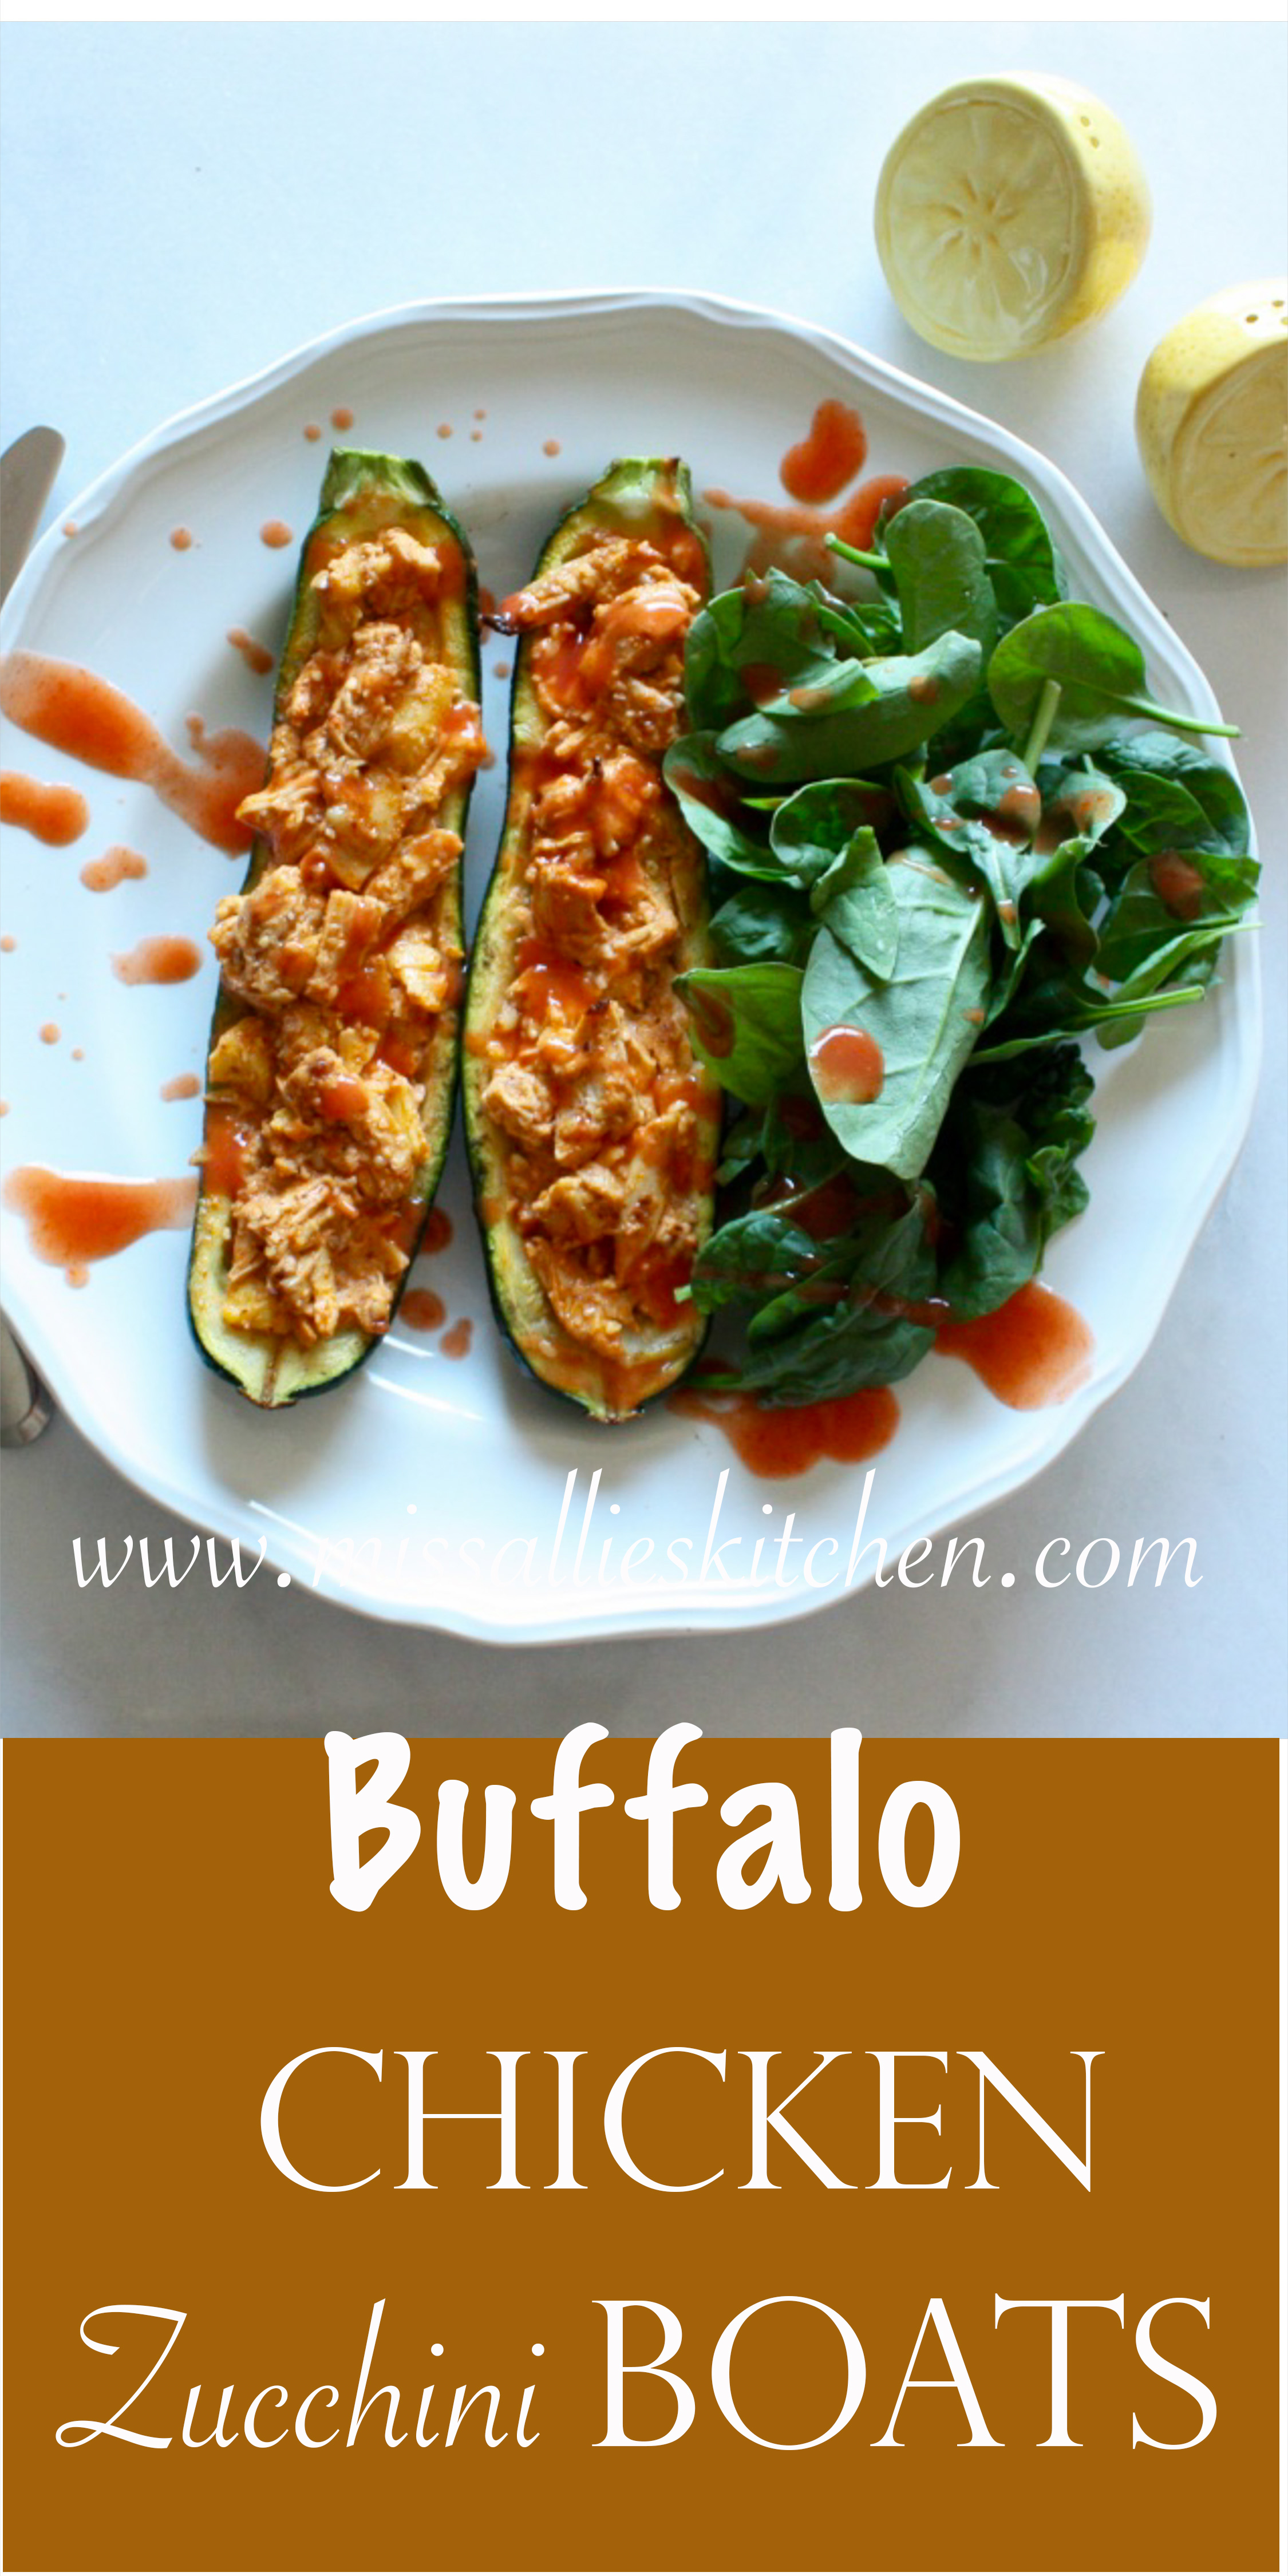 Bubbas Buffalo Chicken Zucchini Boats